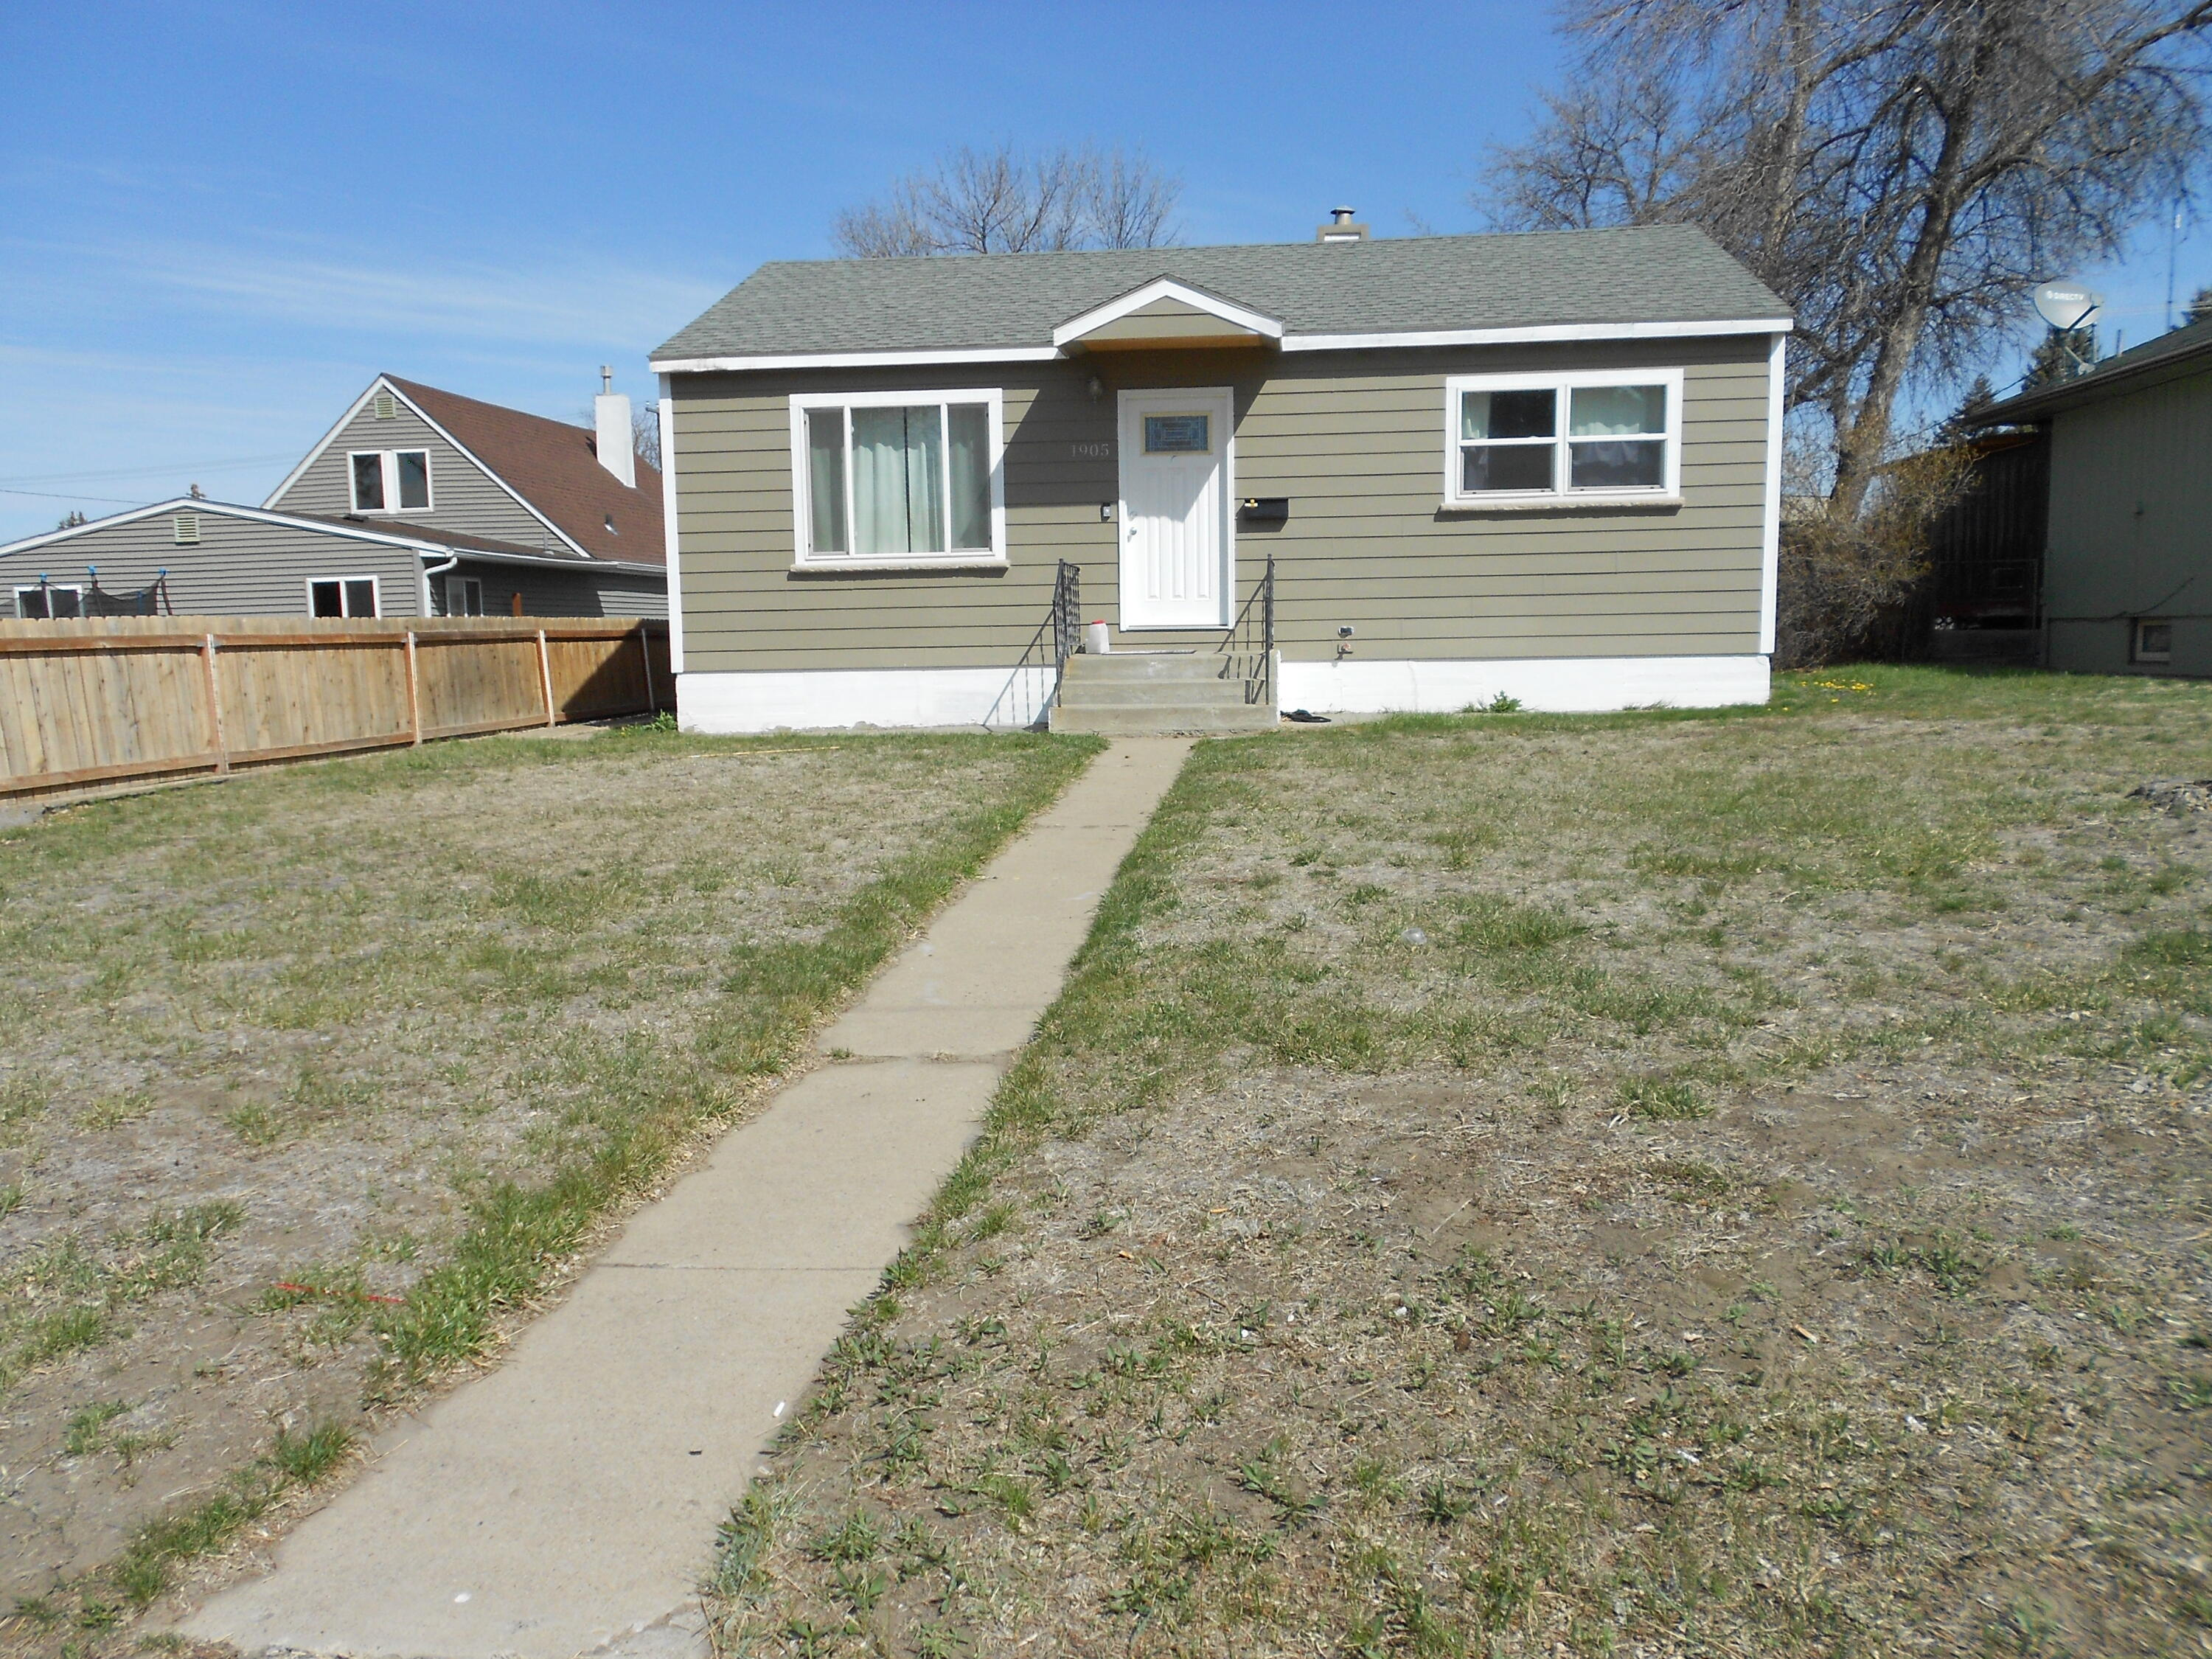 Ranch over basement with detached garage and master that has an ensuite. Updated kitchen, 2 year old windows, roof, doors, paint, siding, cabinets in kitchen, kitchen pantry and flooring. Central air is 4 years old. The Sewer line was replaced in 2005.  Big shed and single car garage along with RV parking. Call Ron Dodd at 406-799-2829, or your real estate professional.